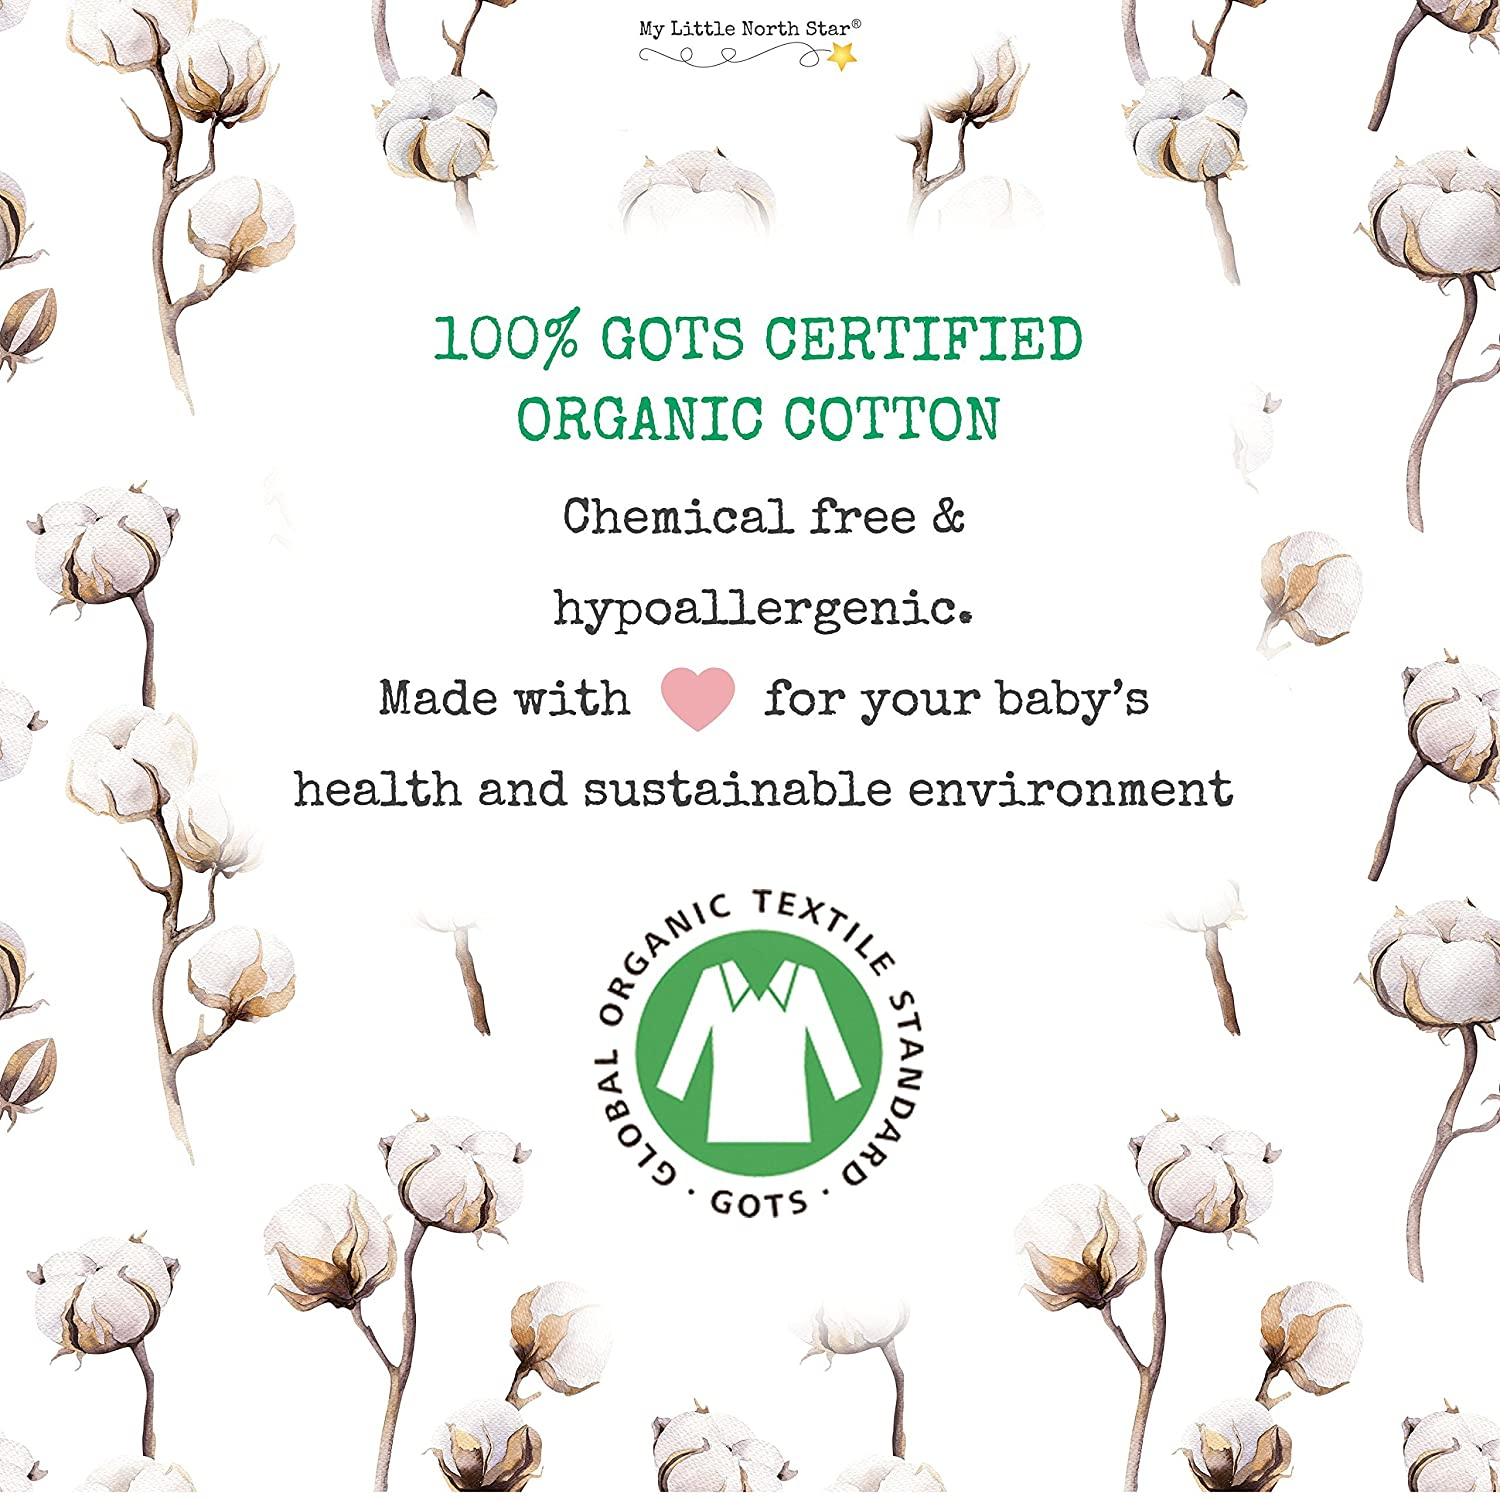 Amazon crib sheets 100 organic jersey cotton 2pk unisex amazon crib sheets 100 organic jersey cotton 2pk unisex best baby shower gift for boy or girl by my little north star baby publicscrutiny Choice Image